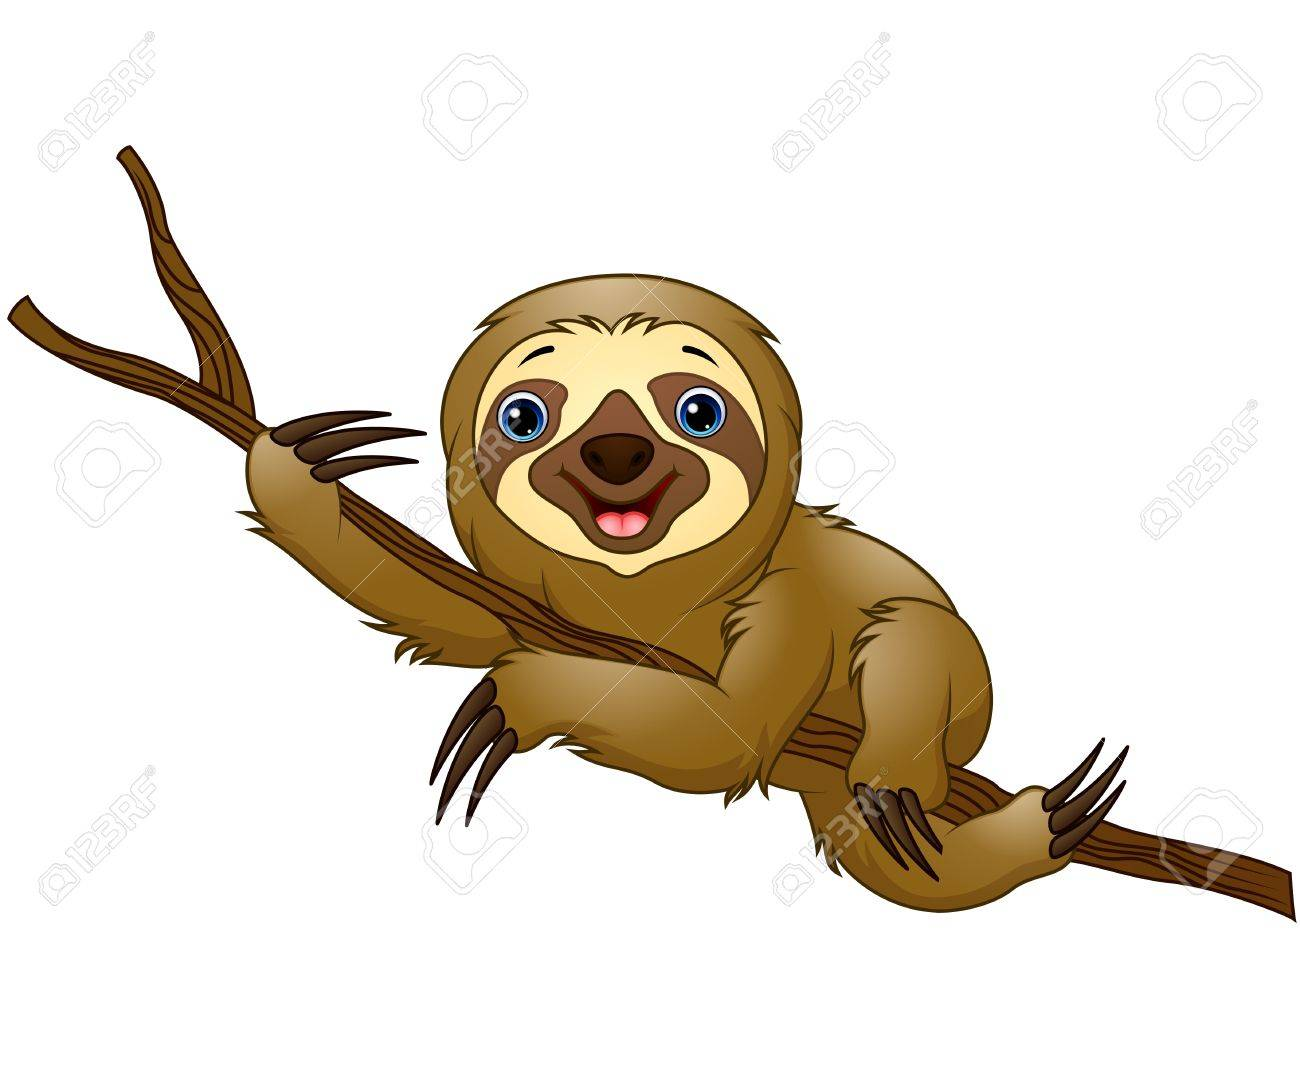 Cartoon sloth on a tree branch.